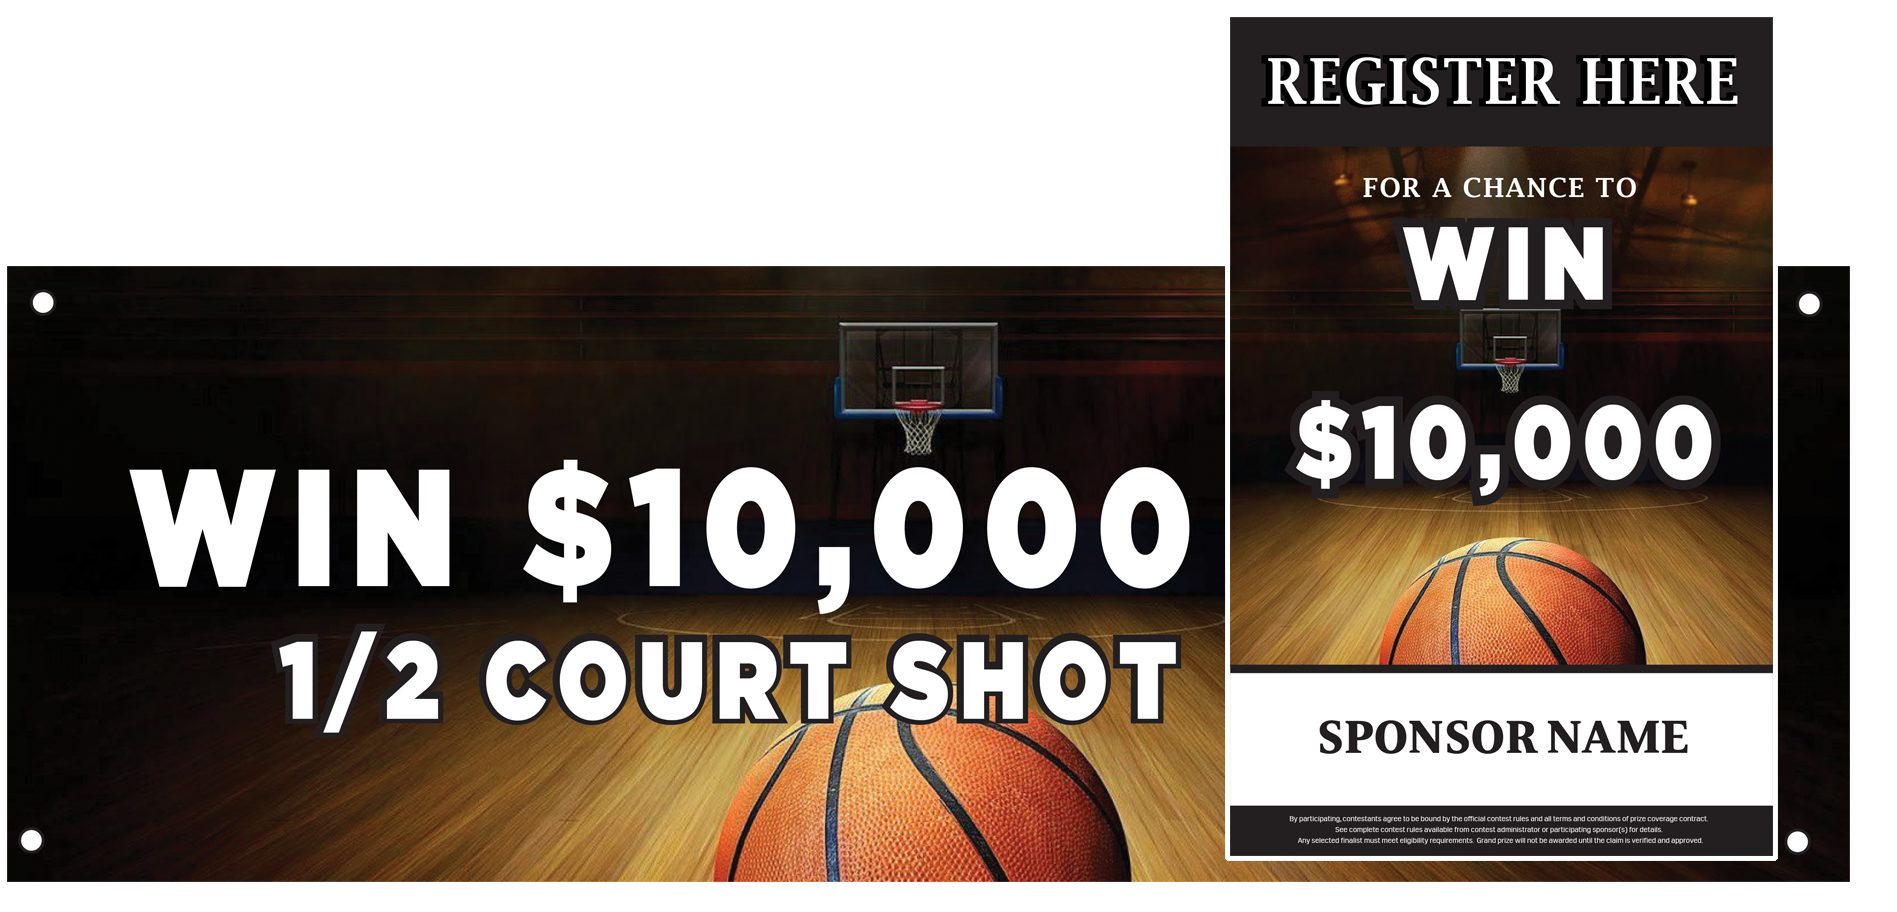 Basketball Catalog Download - Grand Prize Promotions